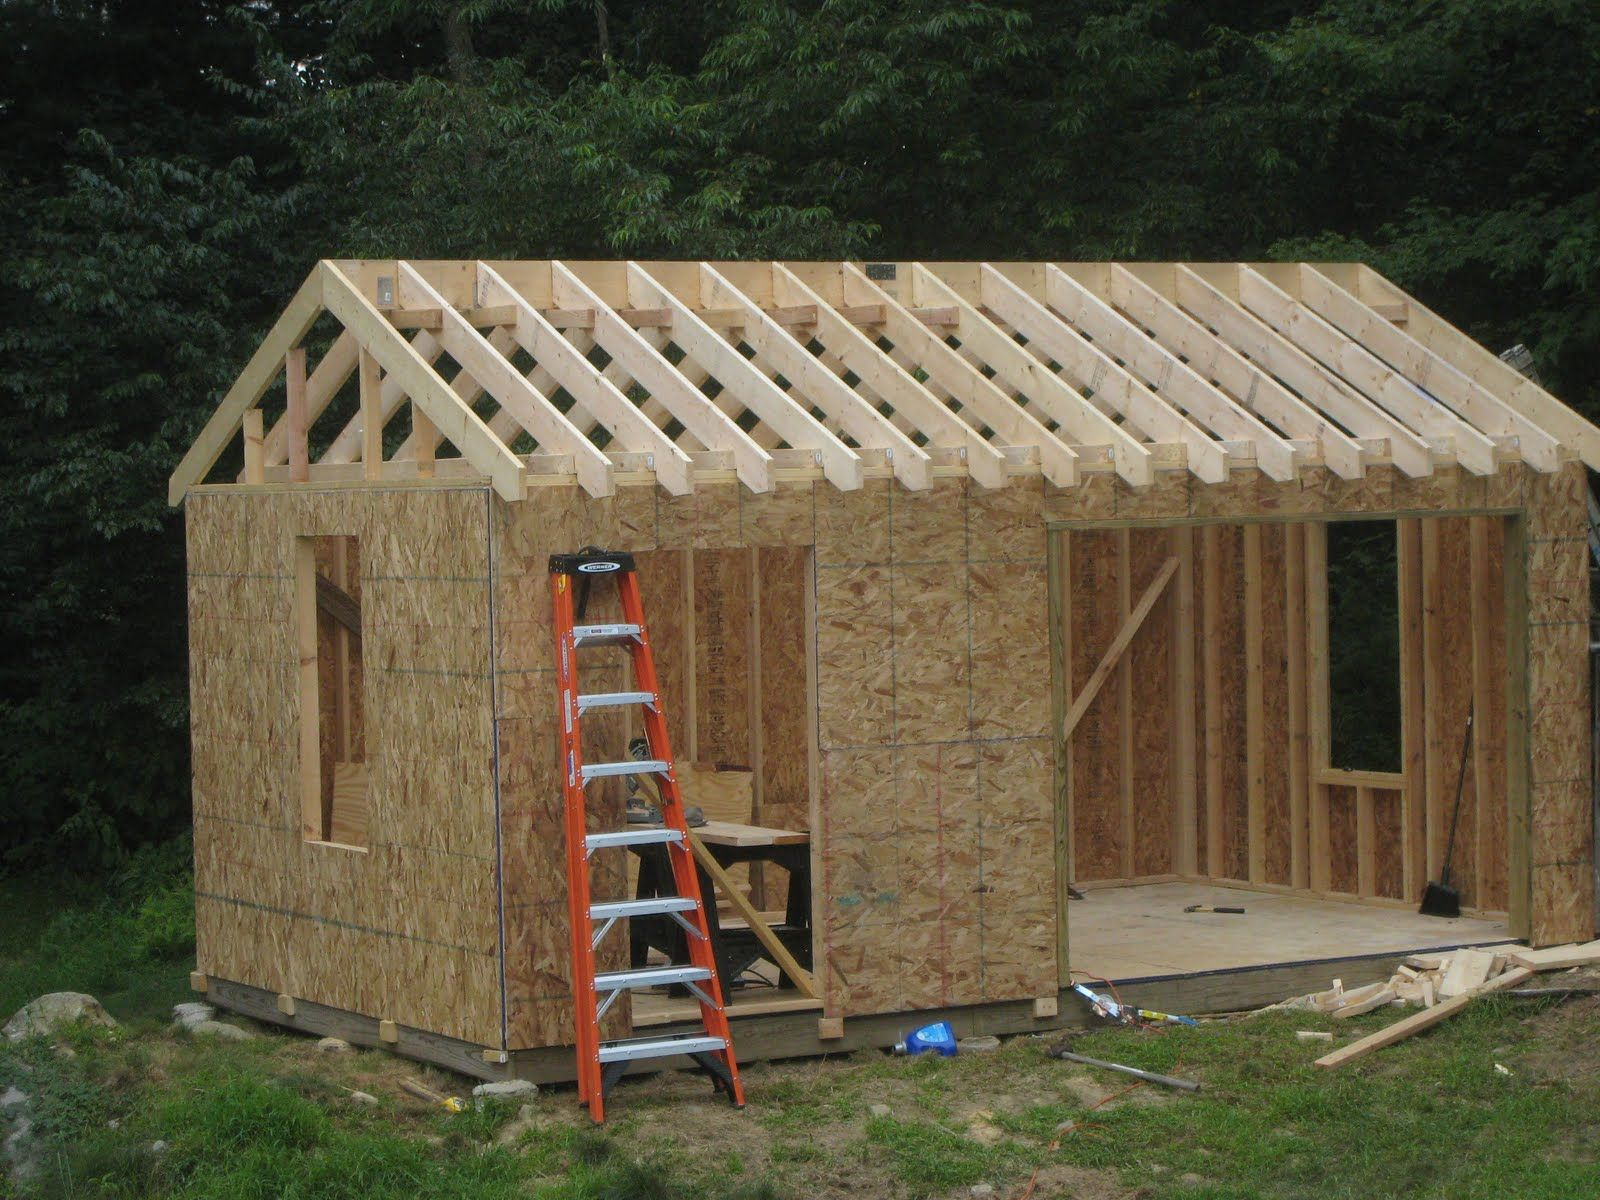 17 best ideas about 10x12 shed plans on pinterest shed plans 10x12 shed and diy shed plans